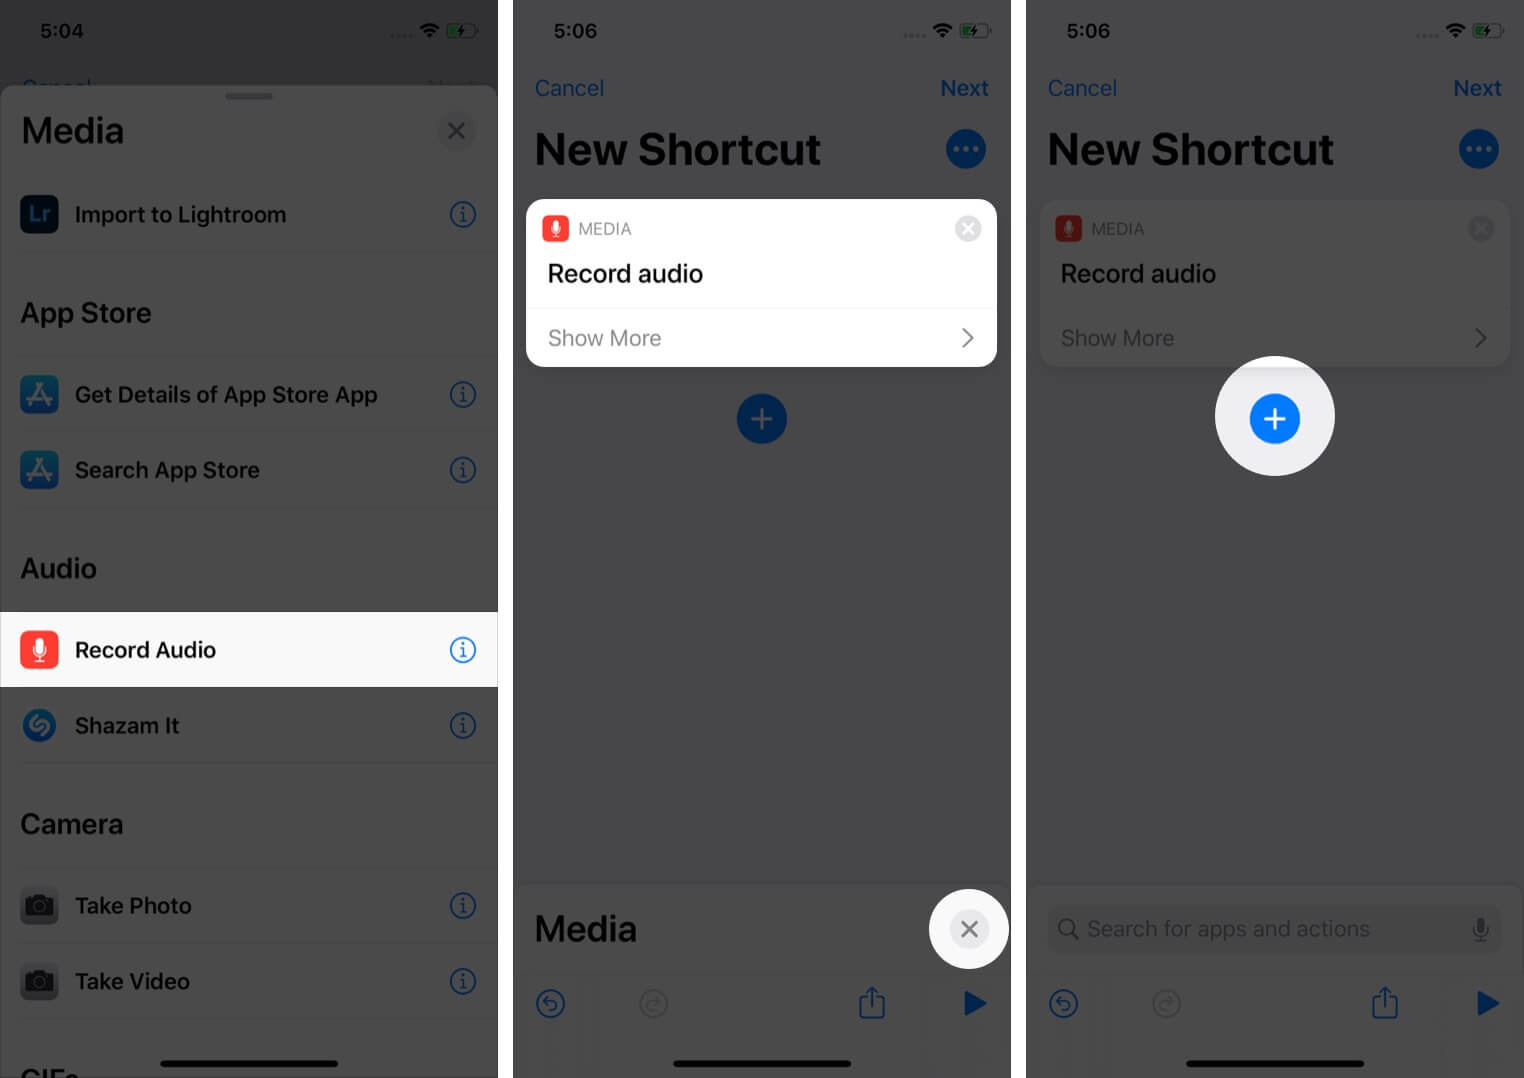 tap on record audio and tap on close then tap on plus